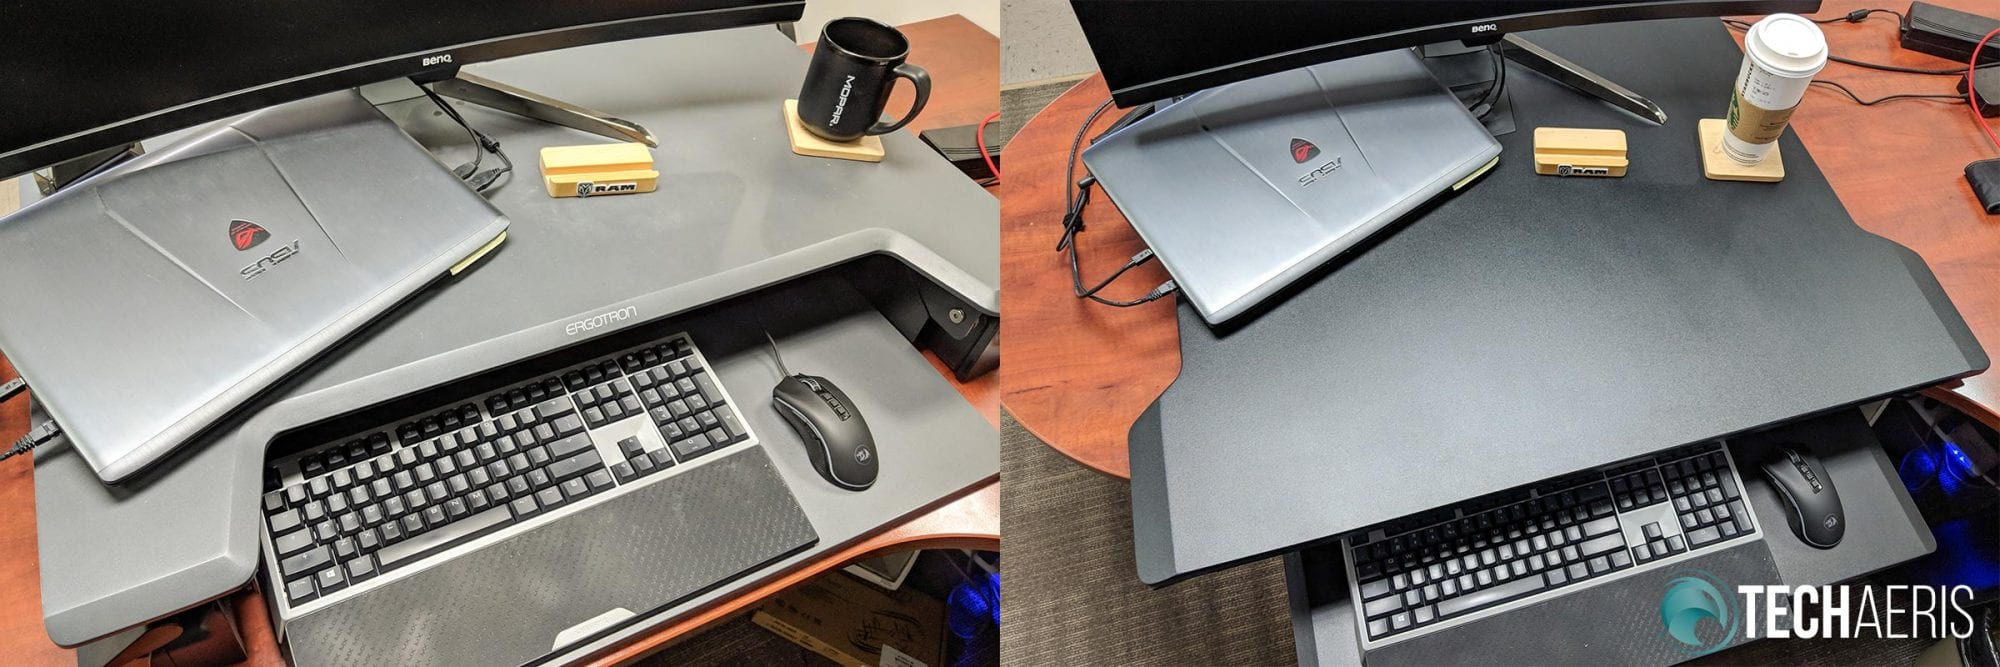 Ergotron WorkFit-TL (left) compared to Ergotron WorkFit-TX (right)